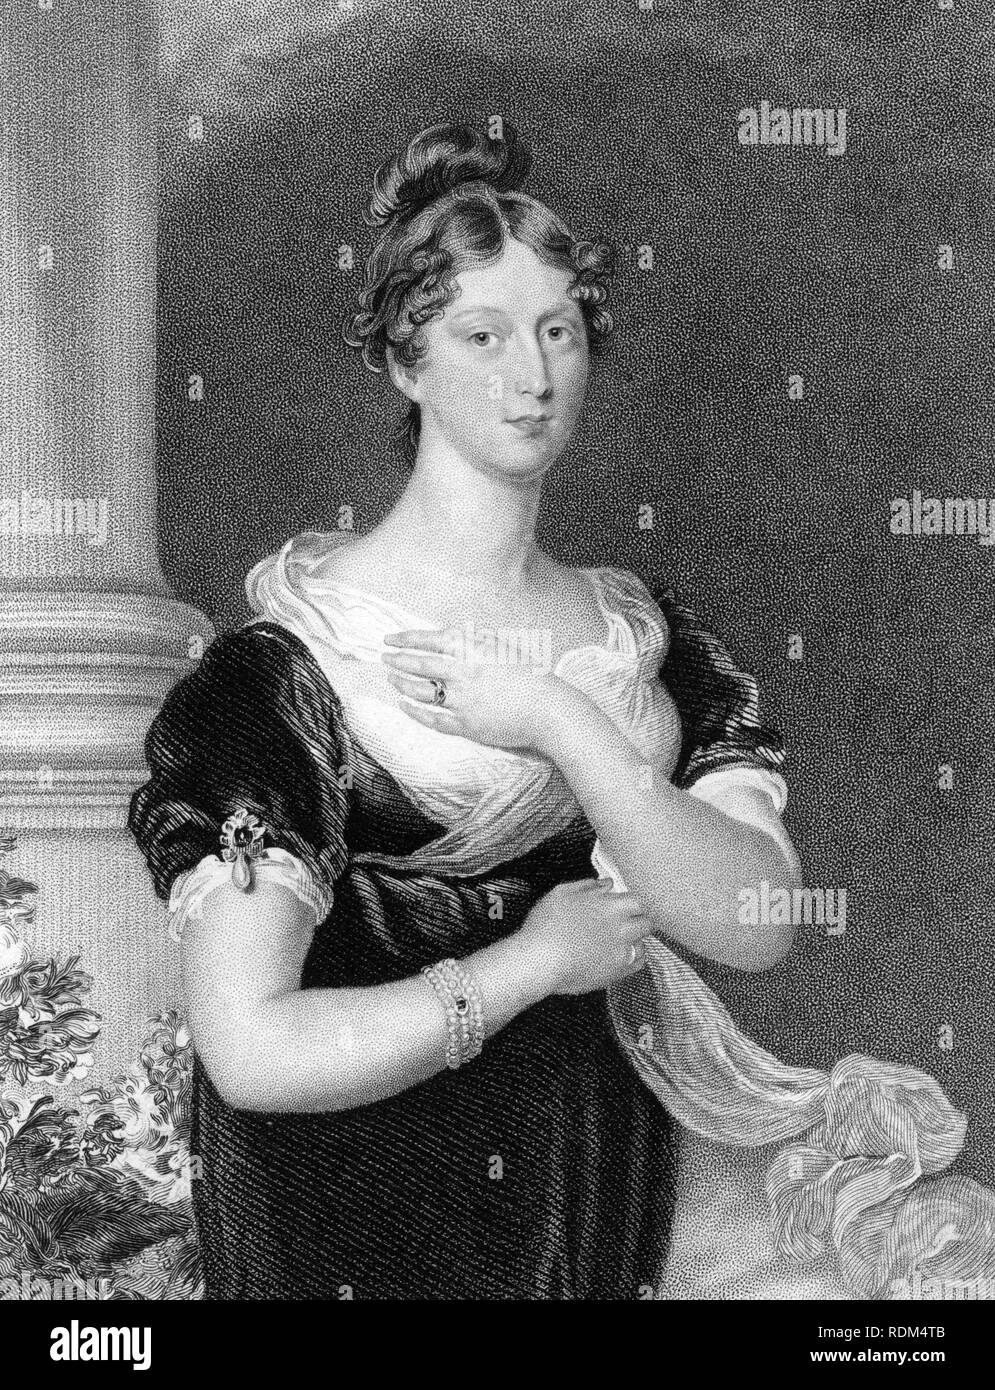 Princess Charlotte Augusta of Wales, an engraving based on a painting by Sir Thomas Lawrence before her death in childbirth in 1817 aged 21, but this version published in 1832. Her death encouraged the later marriage that led to Victoria taking the British throne - Stock Image